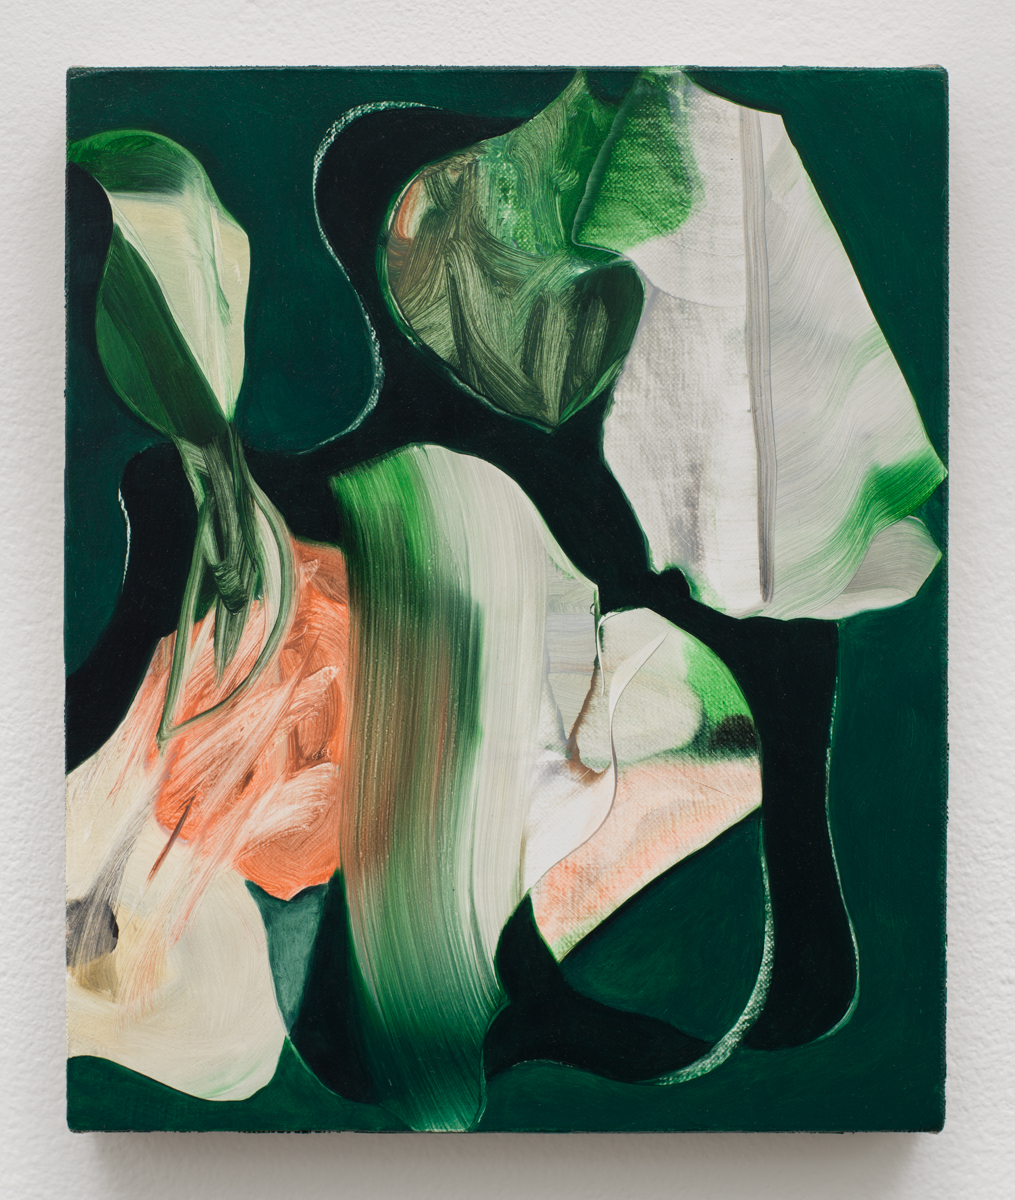 Lesley Vance, Untitled, 2013, oil on linen, 11 x 9 inches (courtesy of David Kor